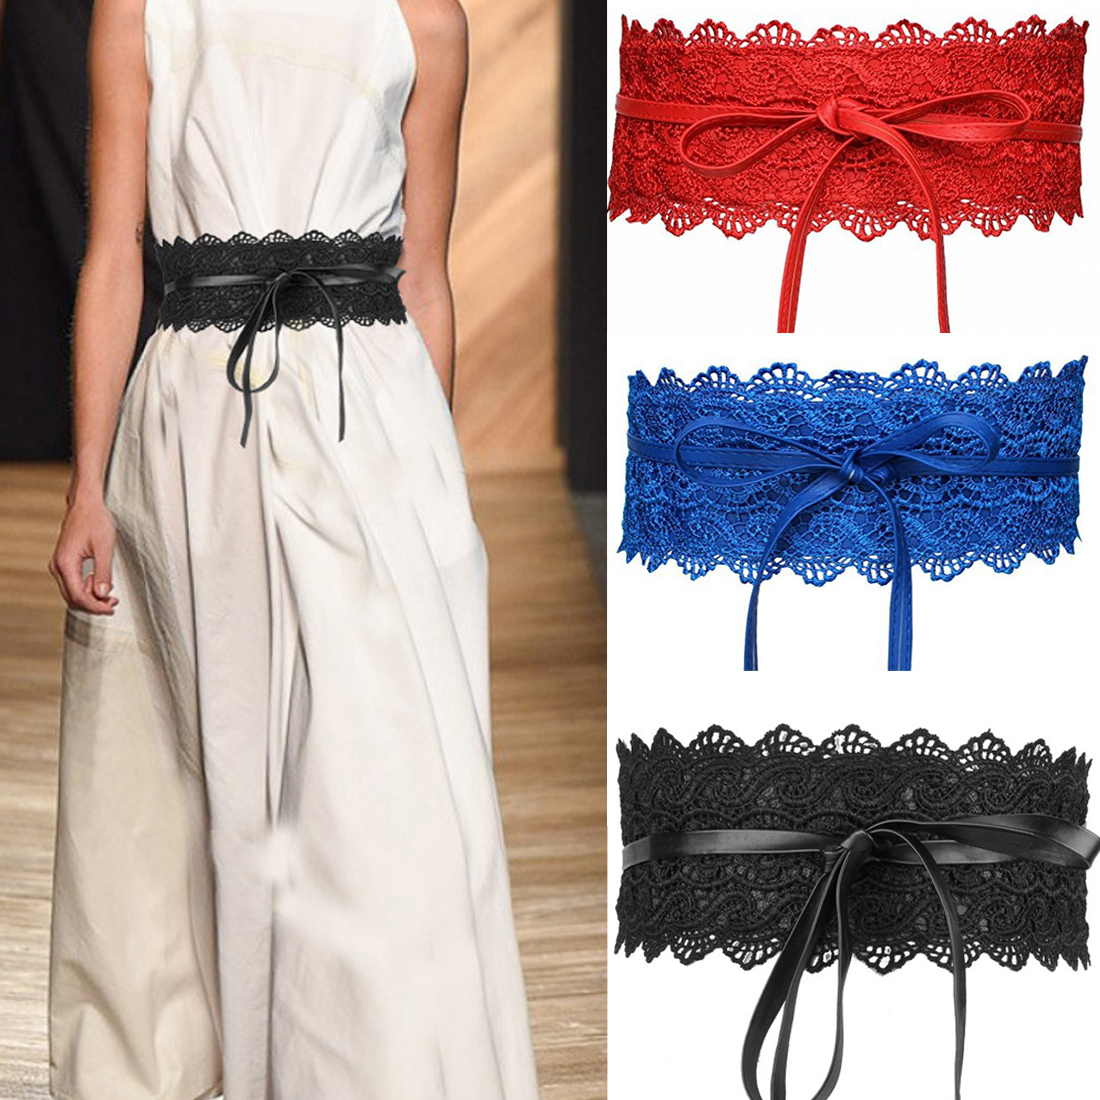 Lace Soft Leather Belts Women Wide Adjustable Tie Waist Belts Multicolor Bow-Knot Wild Accessional For Dress Tops Decoration New